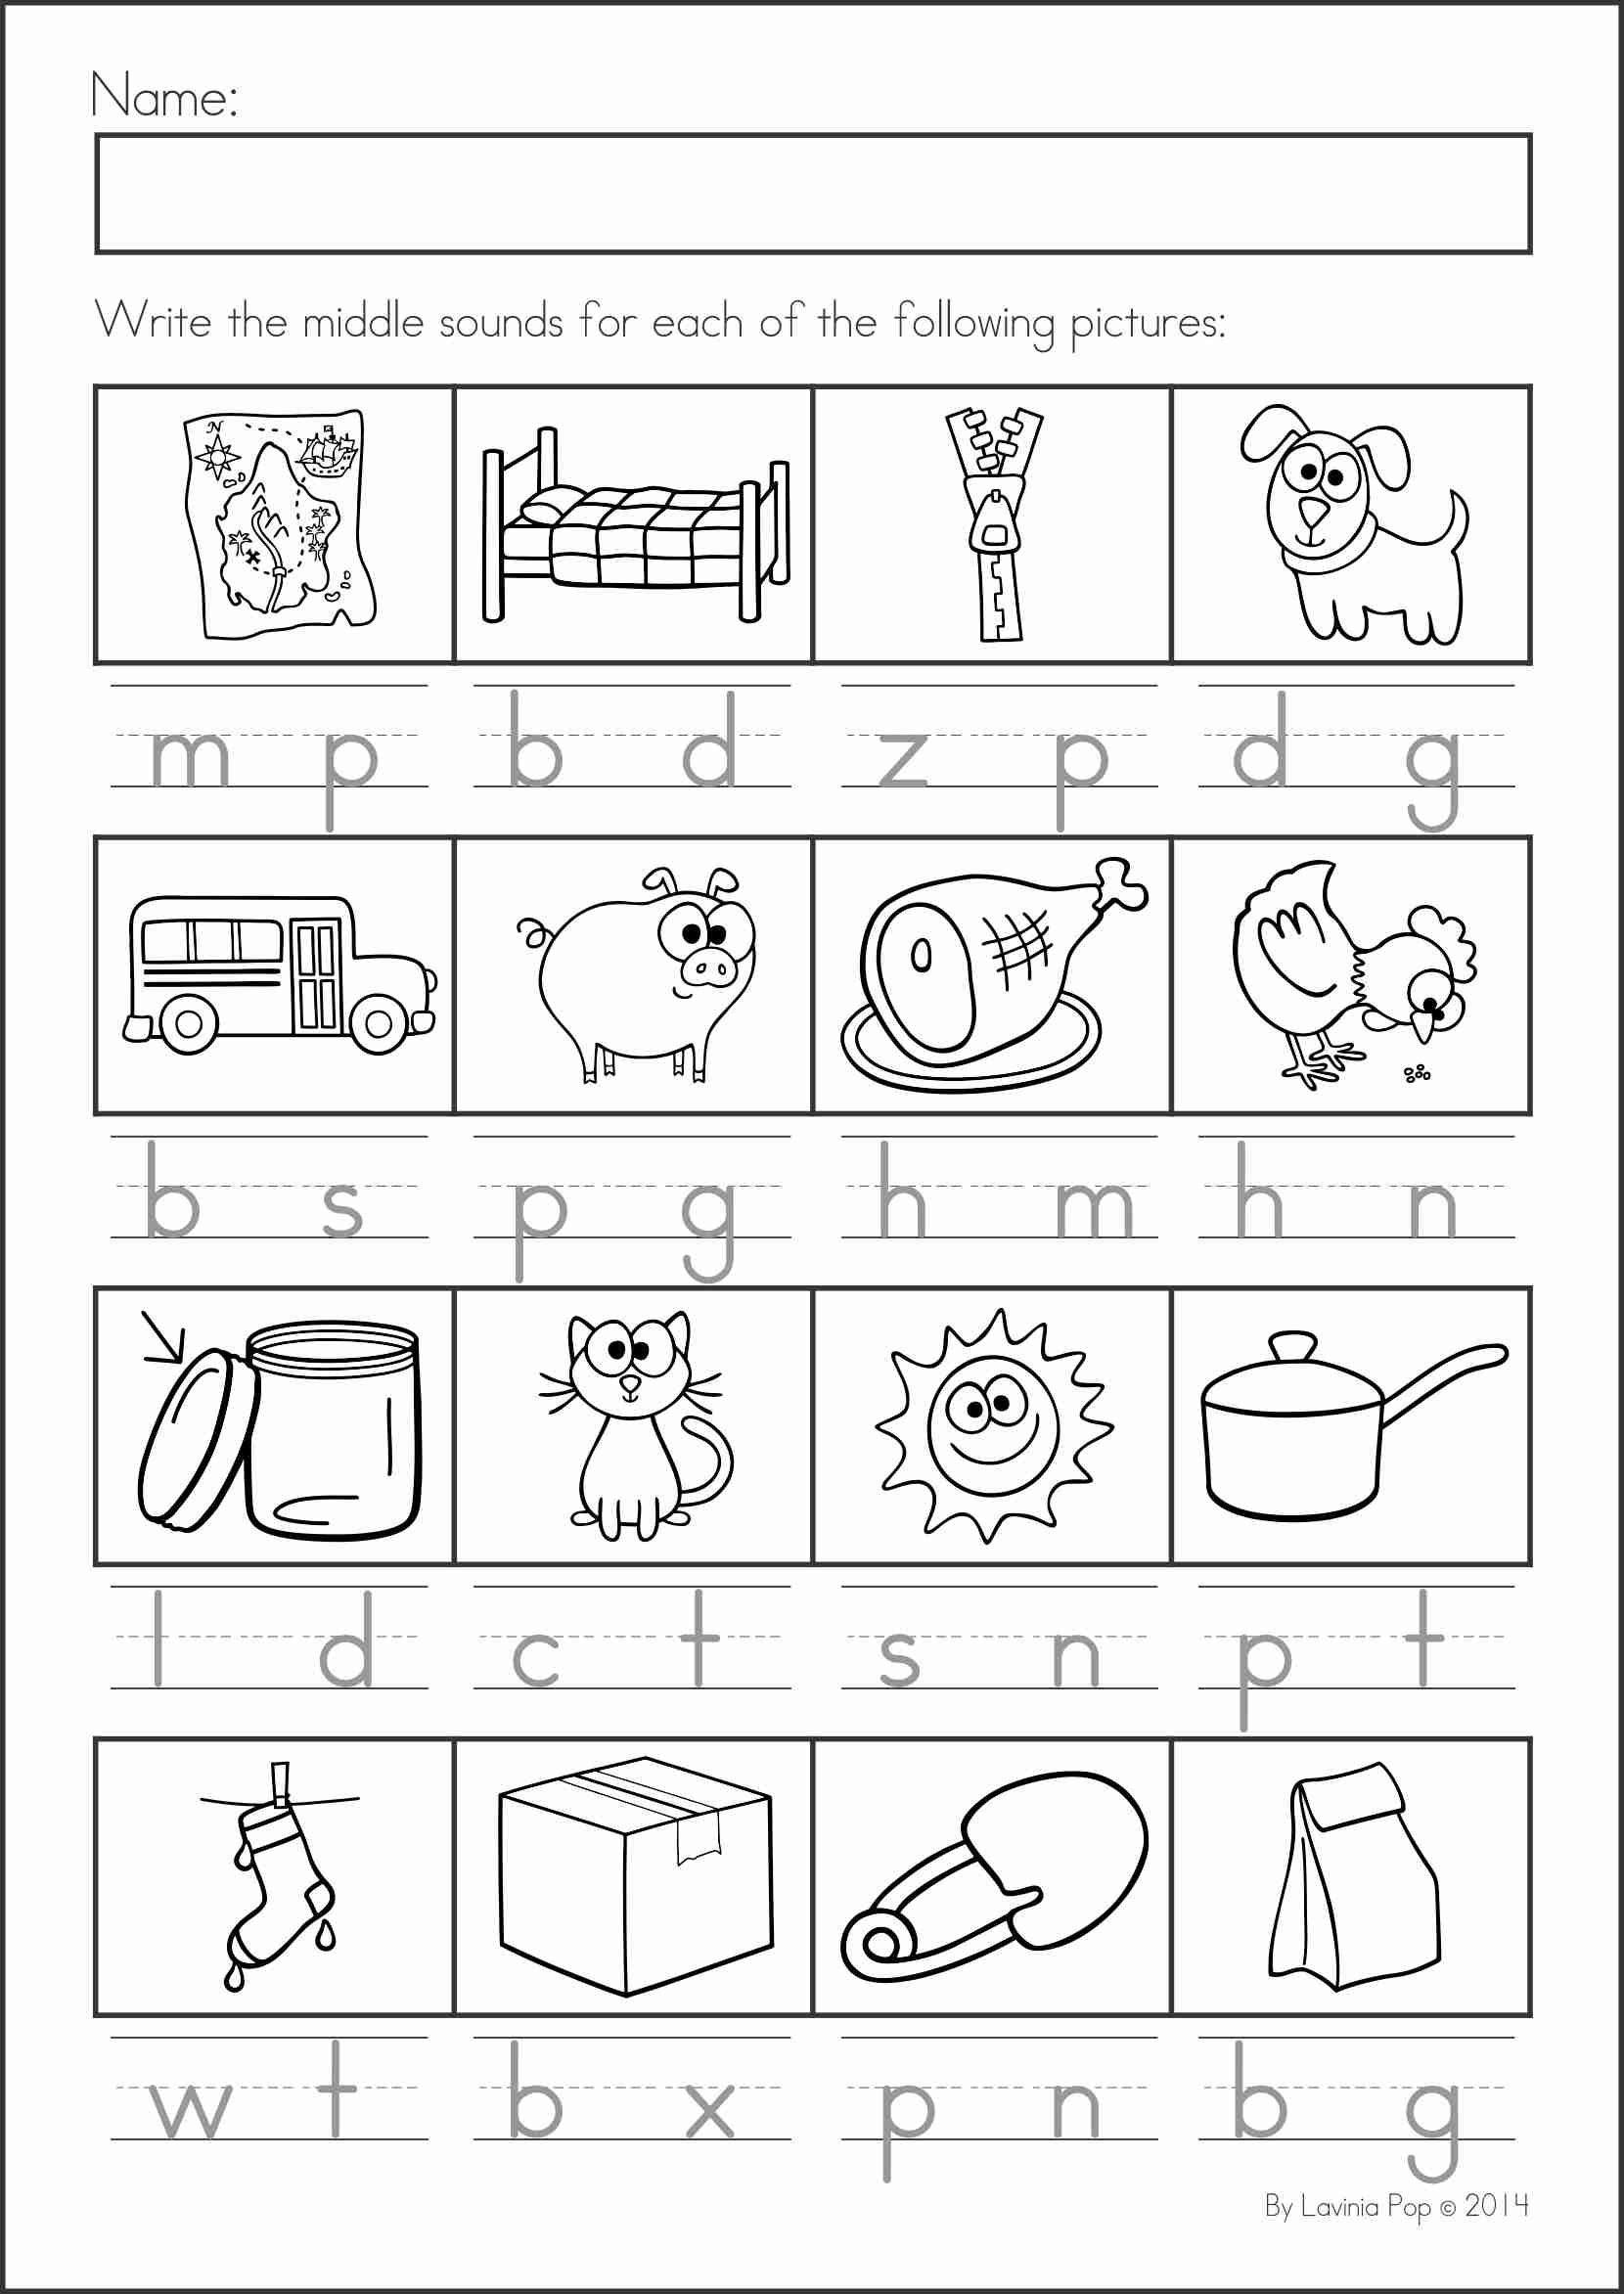 Summer Review Kindergarten Math Literacy Worksheets Activities Phonics Kindergarten Kindergarten Phonics Worksheets Kindergarten Worksheets - 29+ Kindergarten Short Vowel Sounds Worksheets Gif